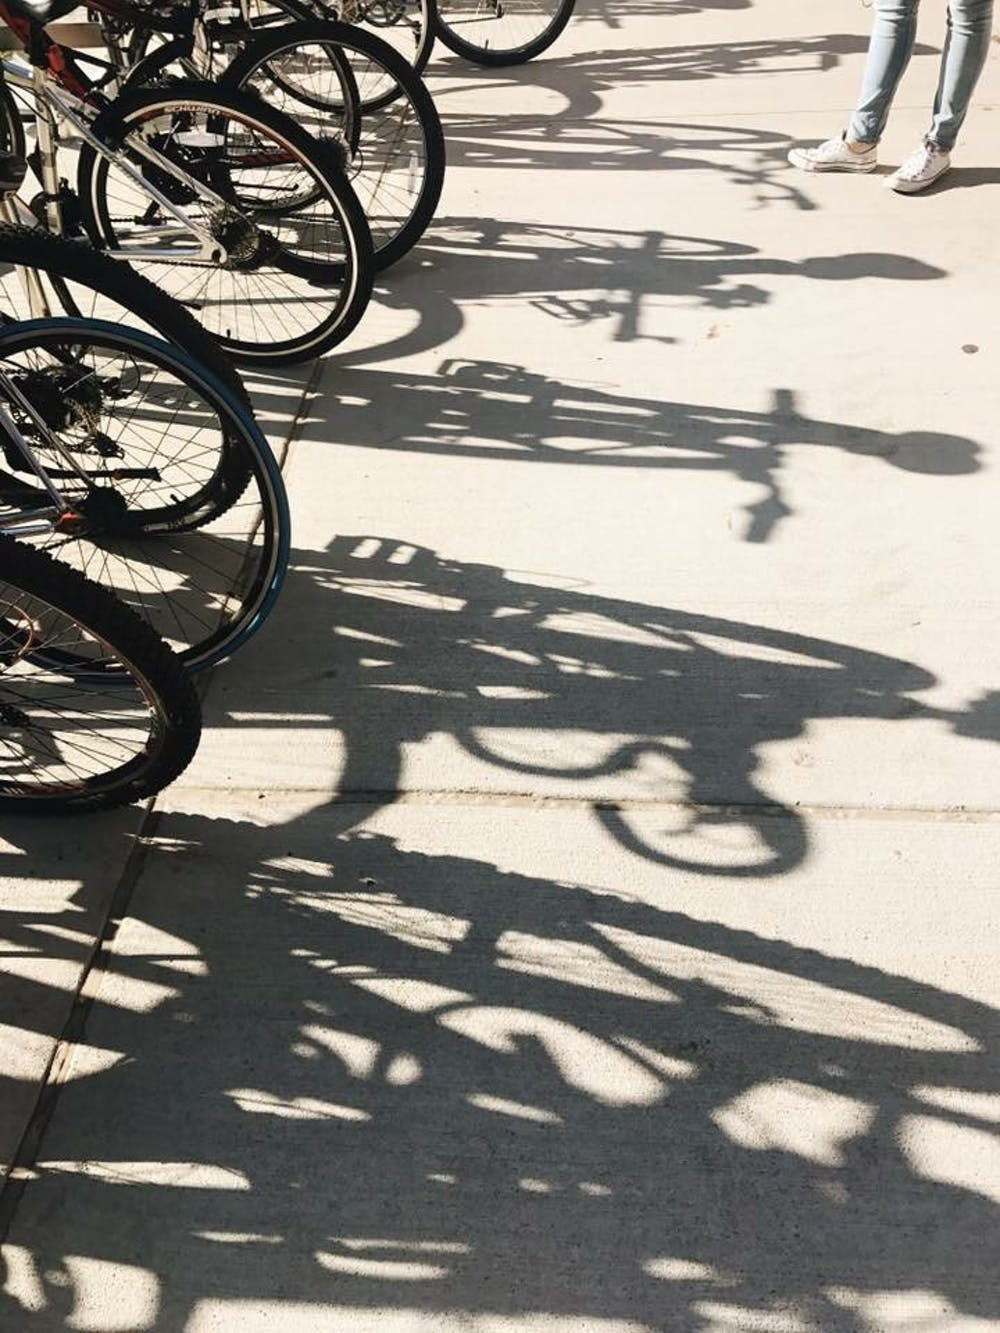 Students could soon borrow bikes on campus